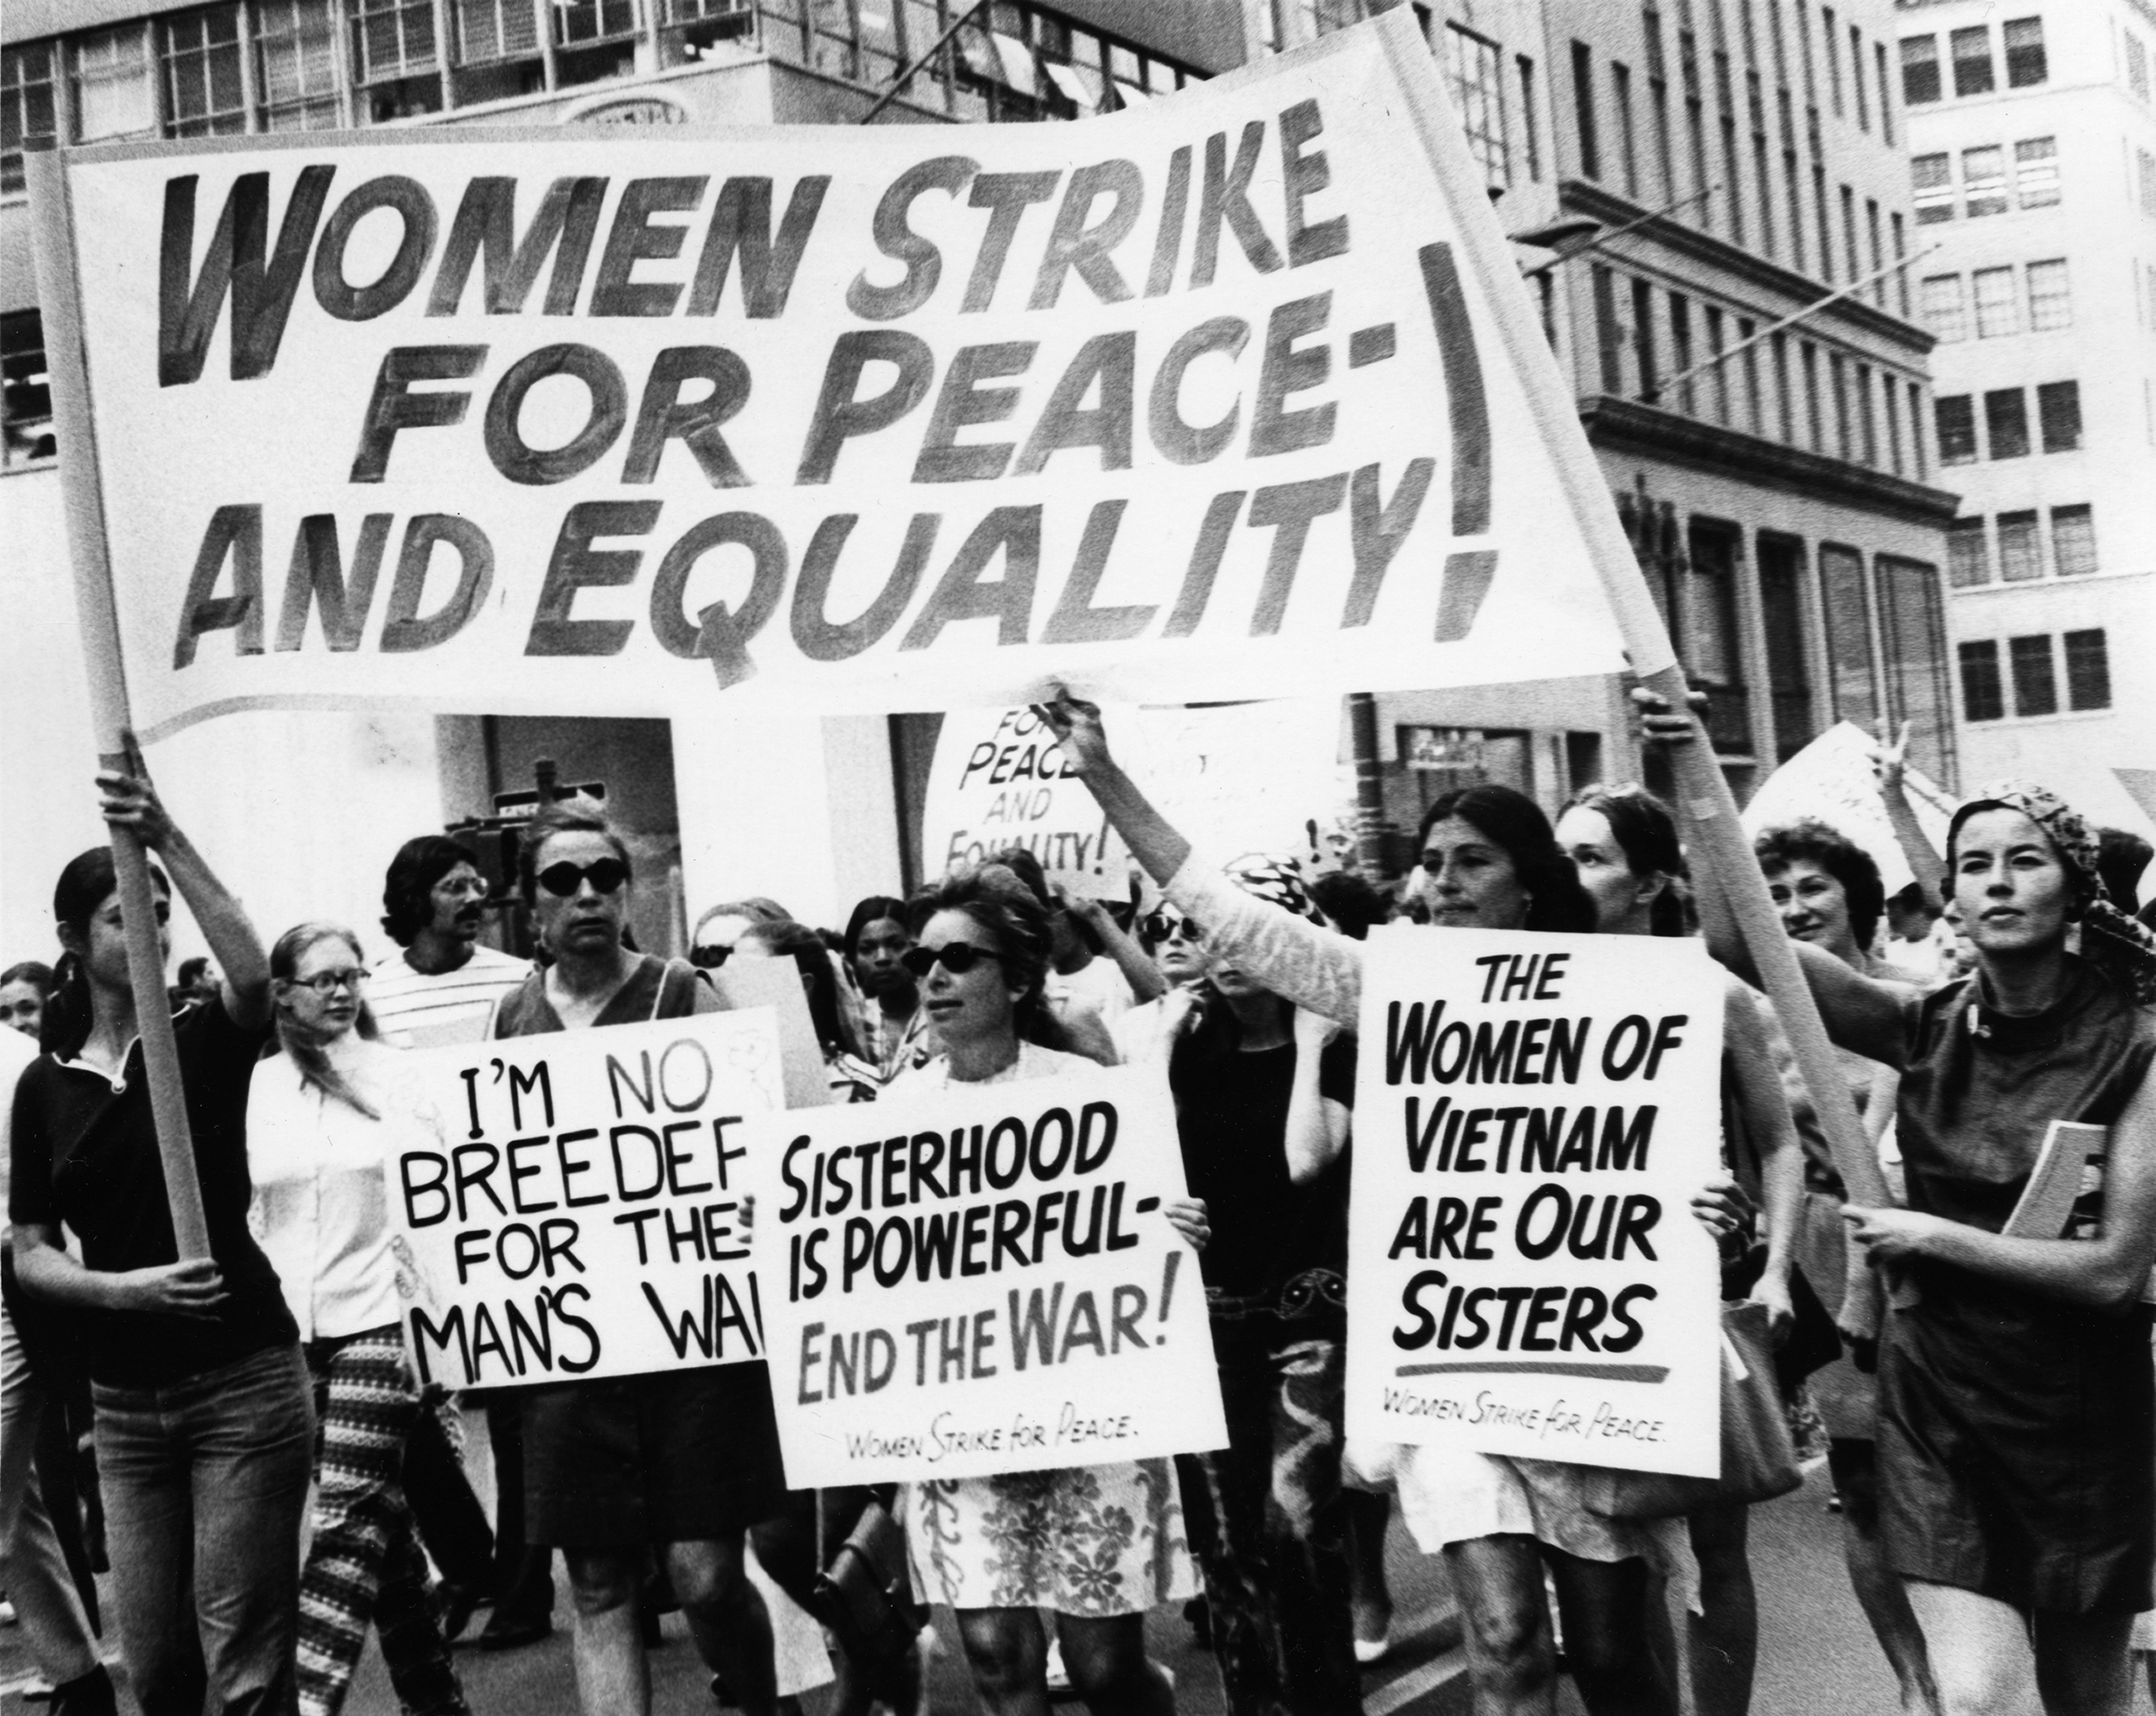 What S Feminists Did During The Women S Movement